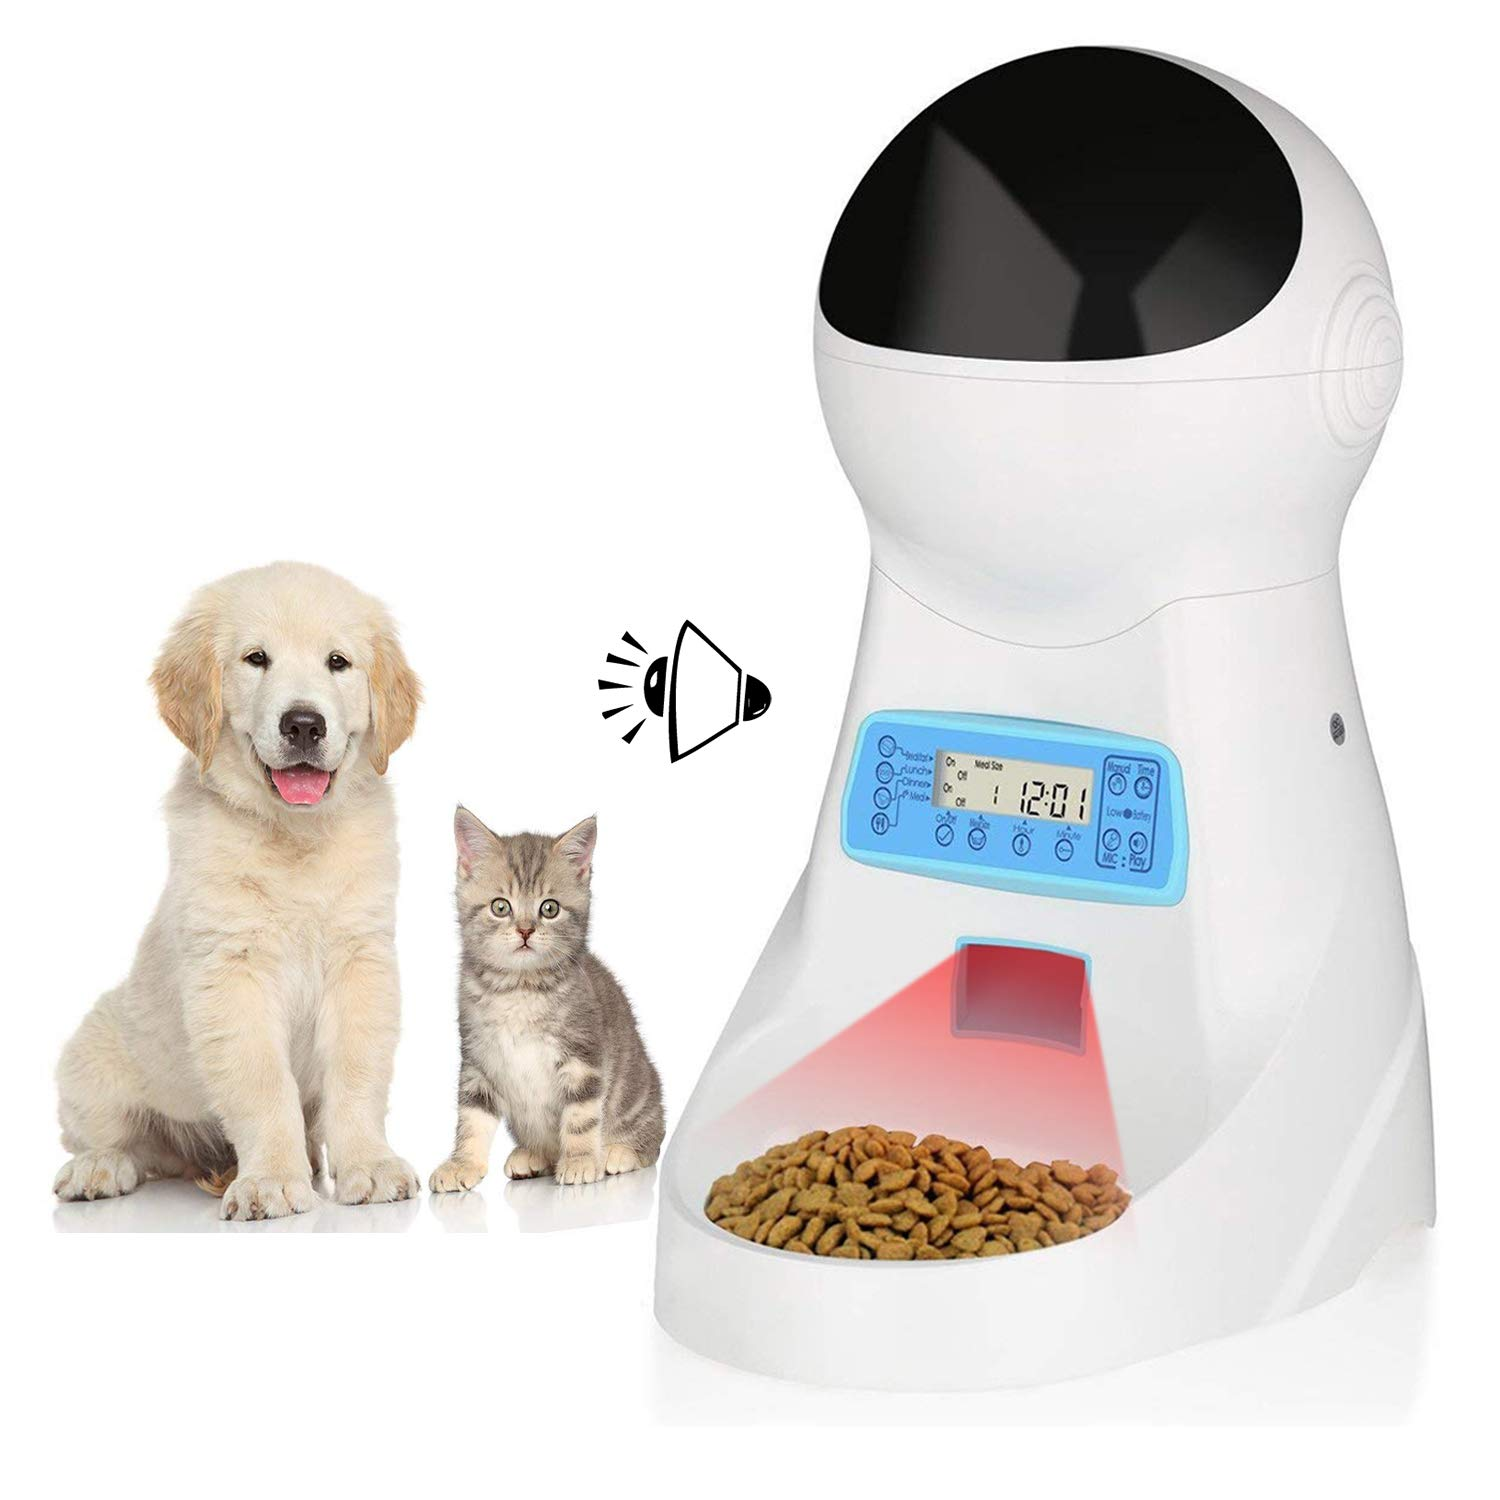 amzdeal Automatic Cat Feeder Pet Feeder Cat Food Dispenser 4 Meals A Day with Timer Programmable Portion Control Voice Recorder 3L Capacity for Cats and Dogs by amzdeal